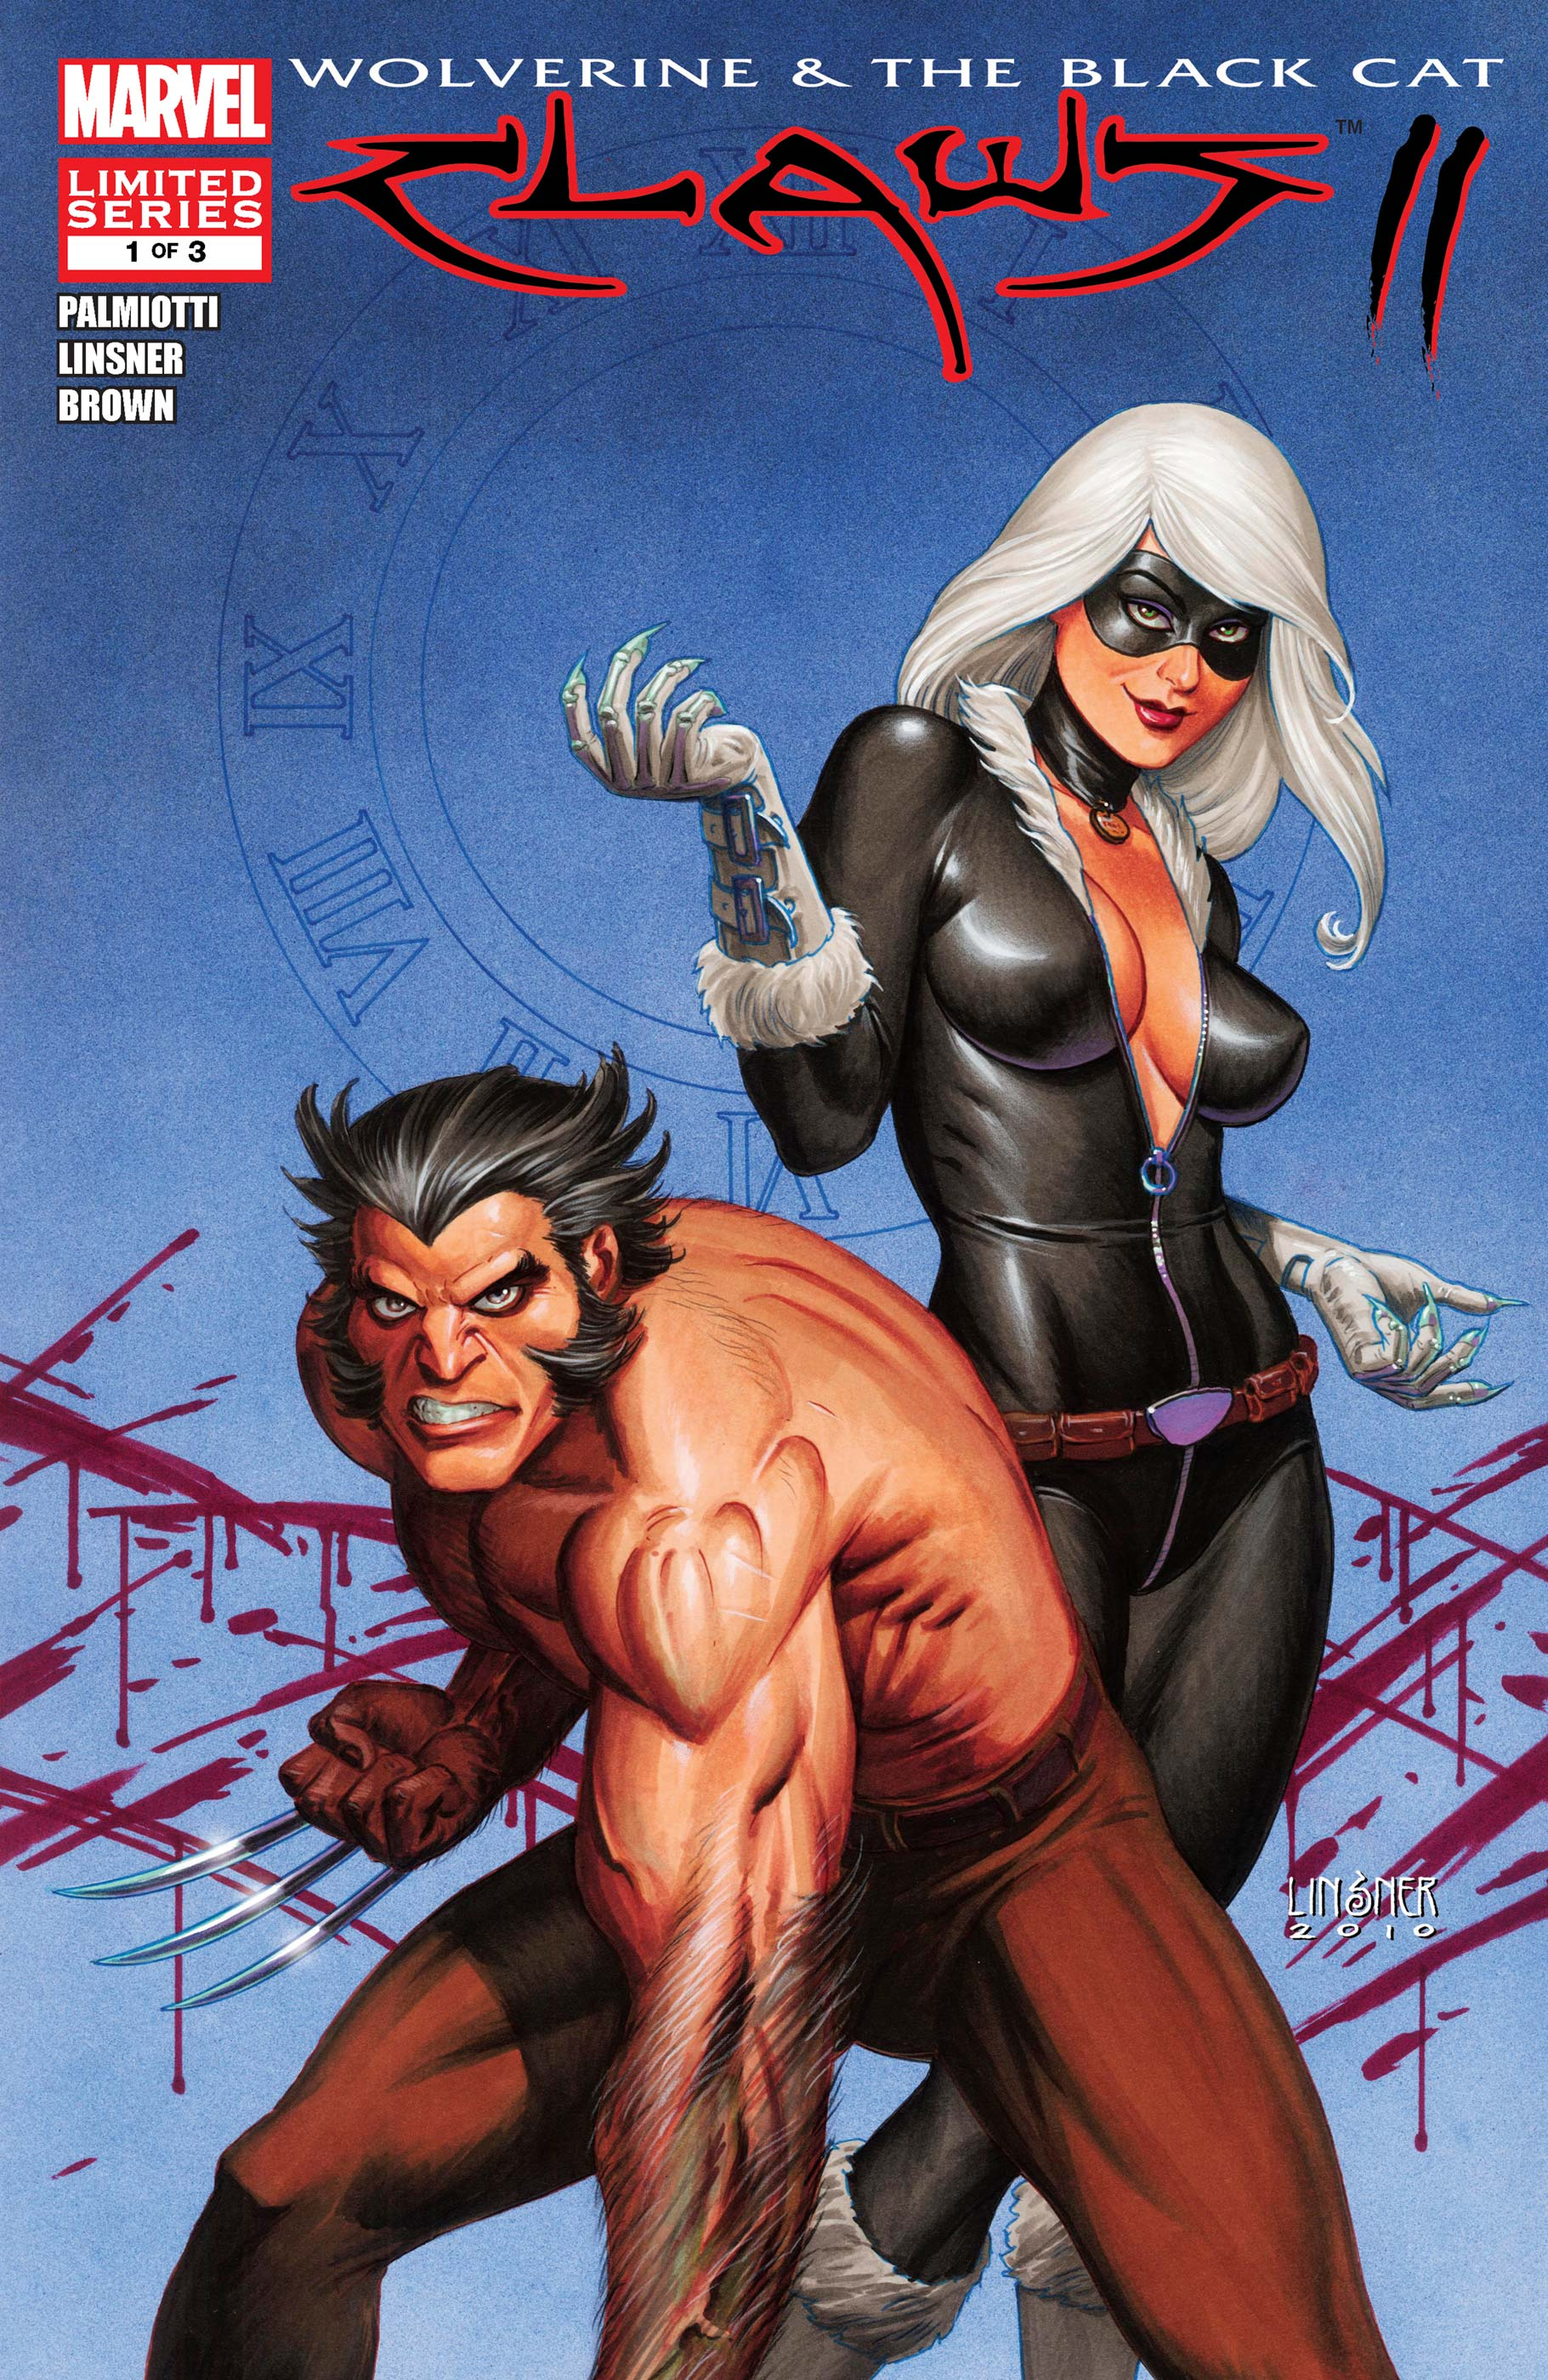 Wolverine & Black Cat: Claws 2 (2010) #1